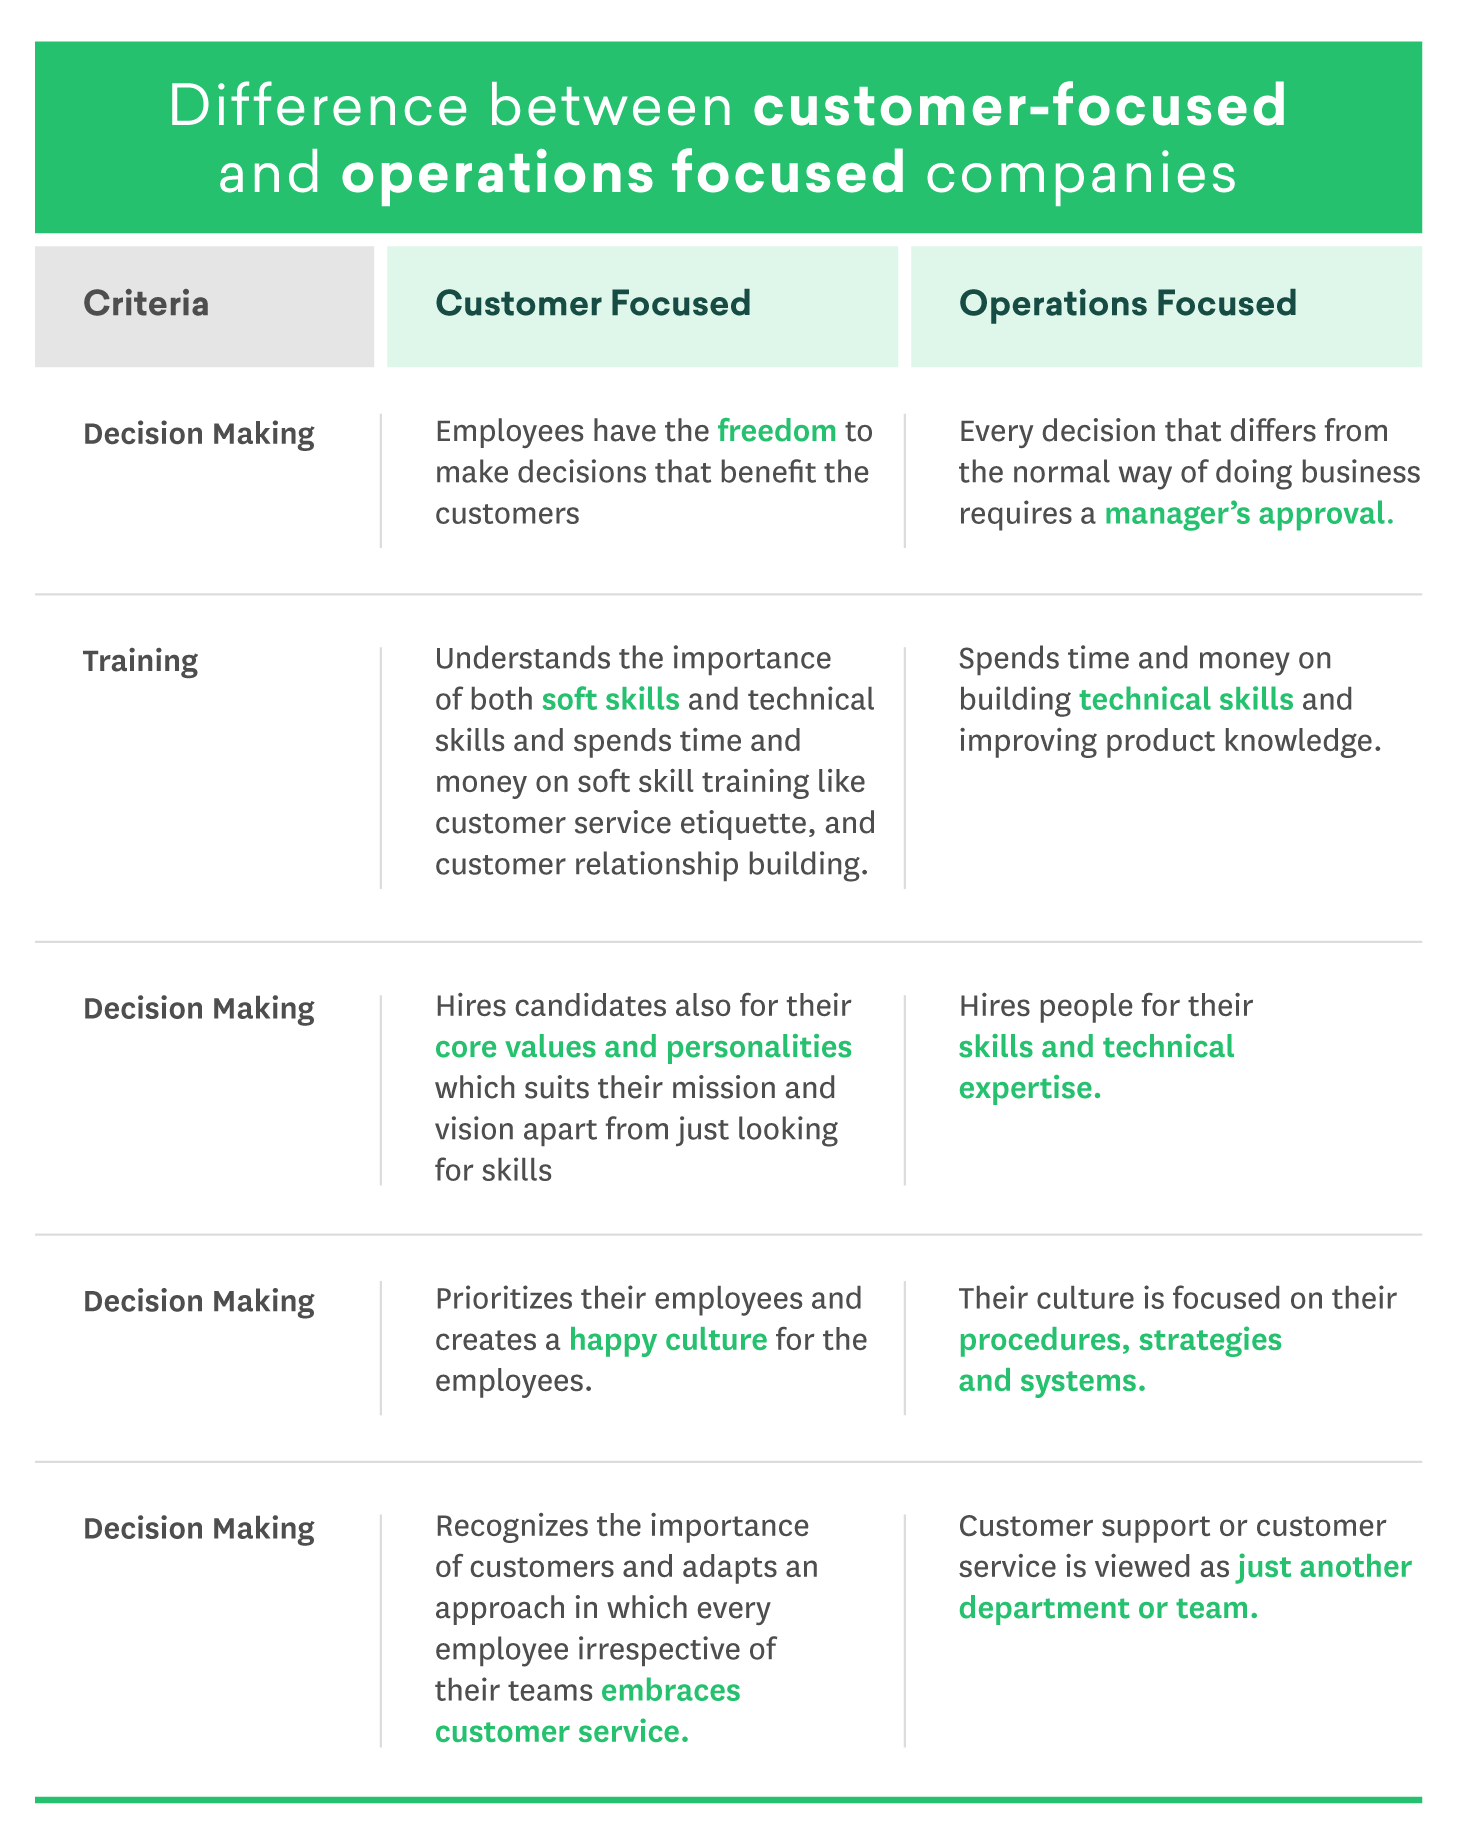 Difference between customer-focused and operations focused companies